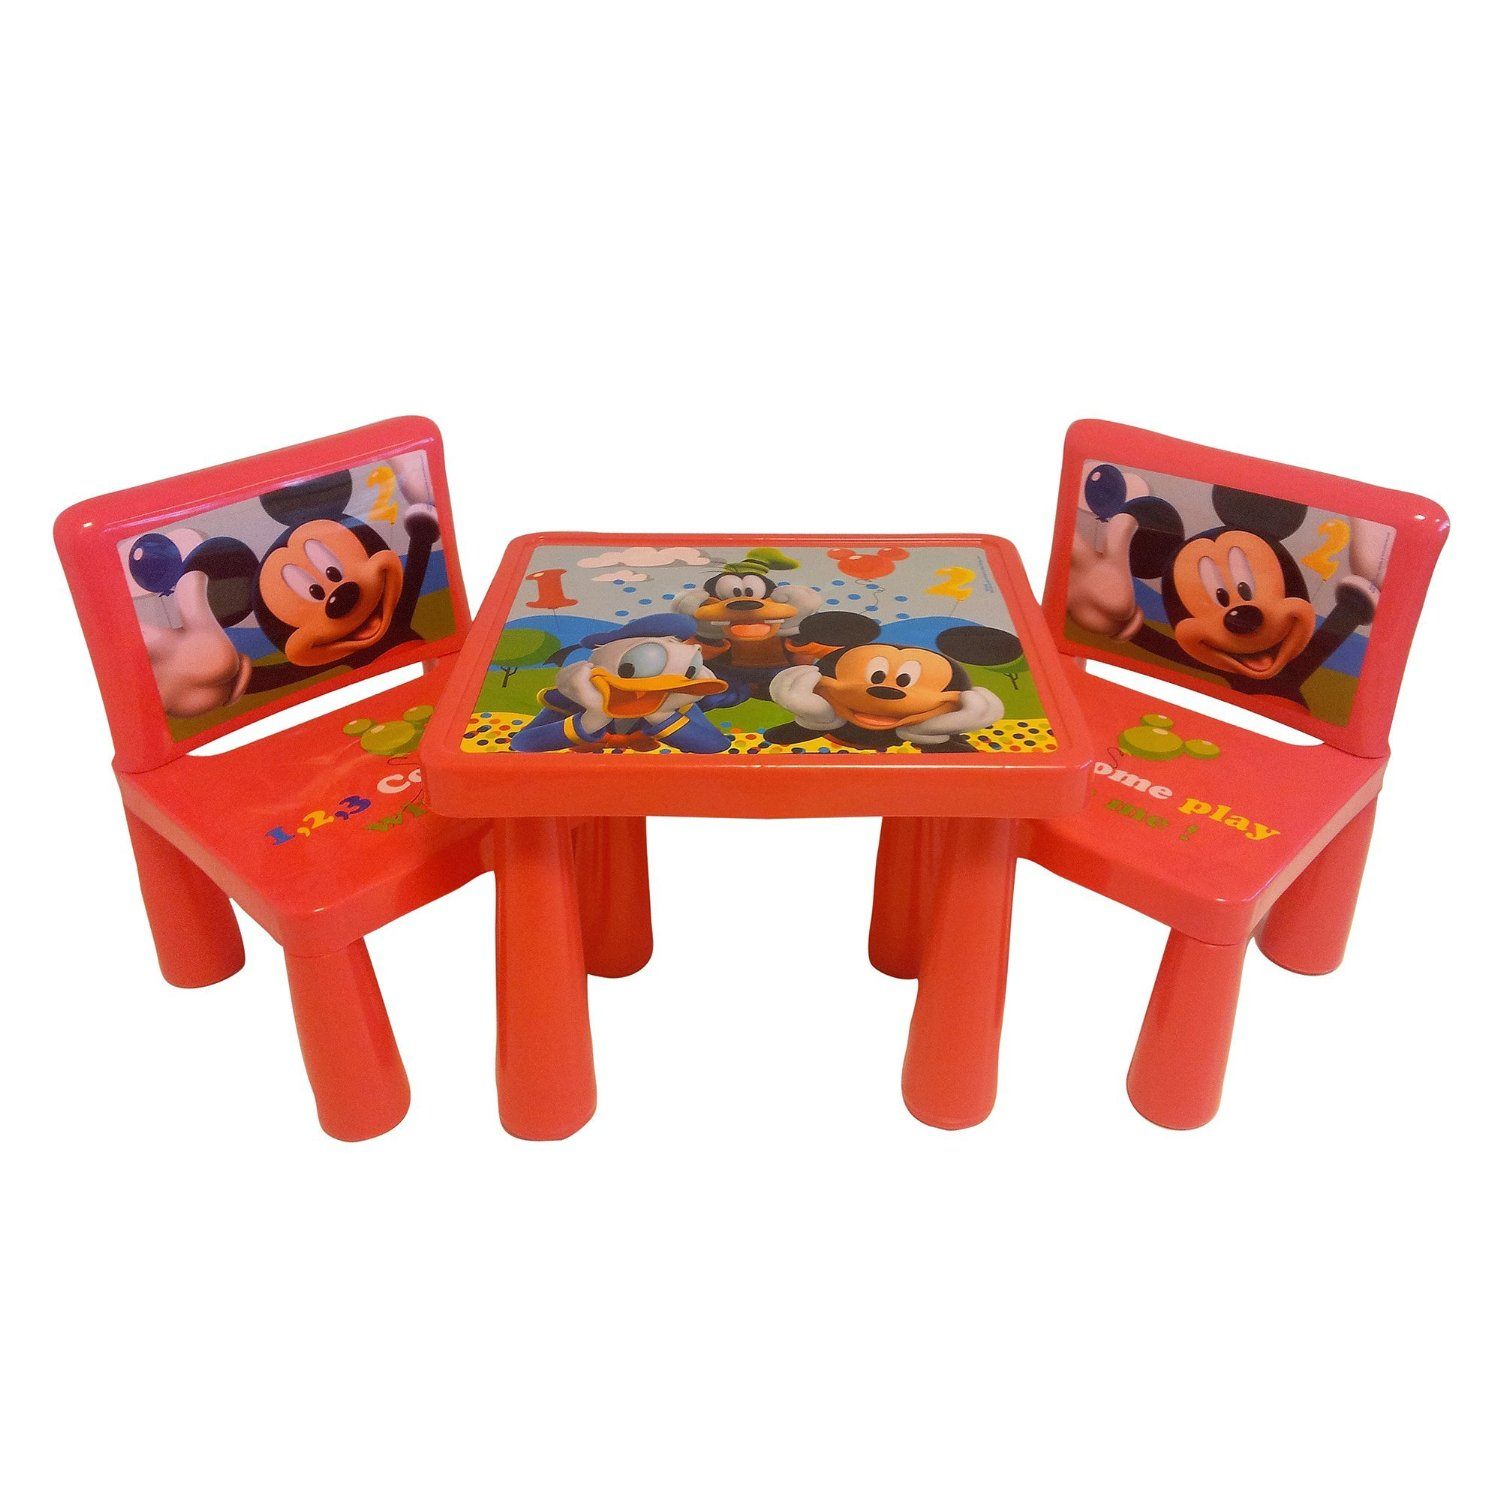 Mickey mouse clubhouse table and chair set decor - Mickey mouse clubhouse bedroom decor ...